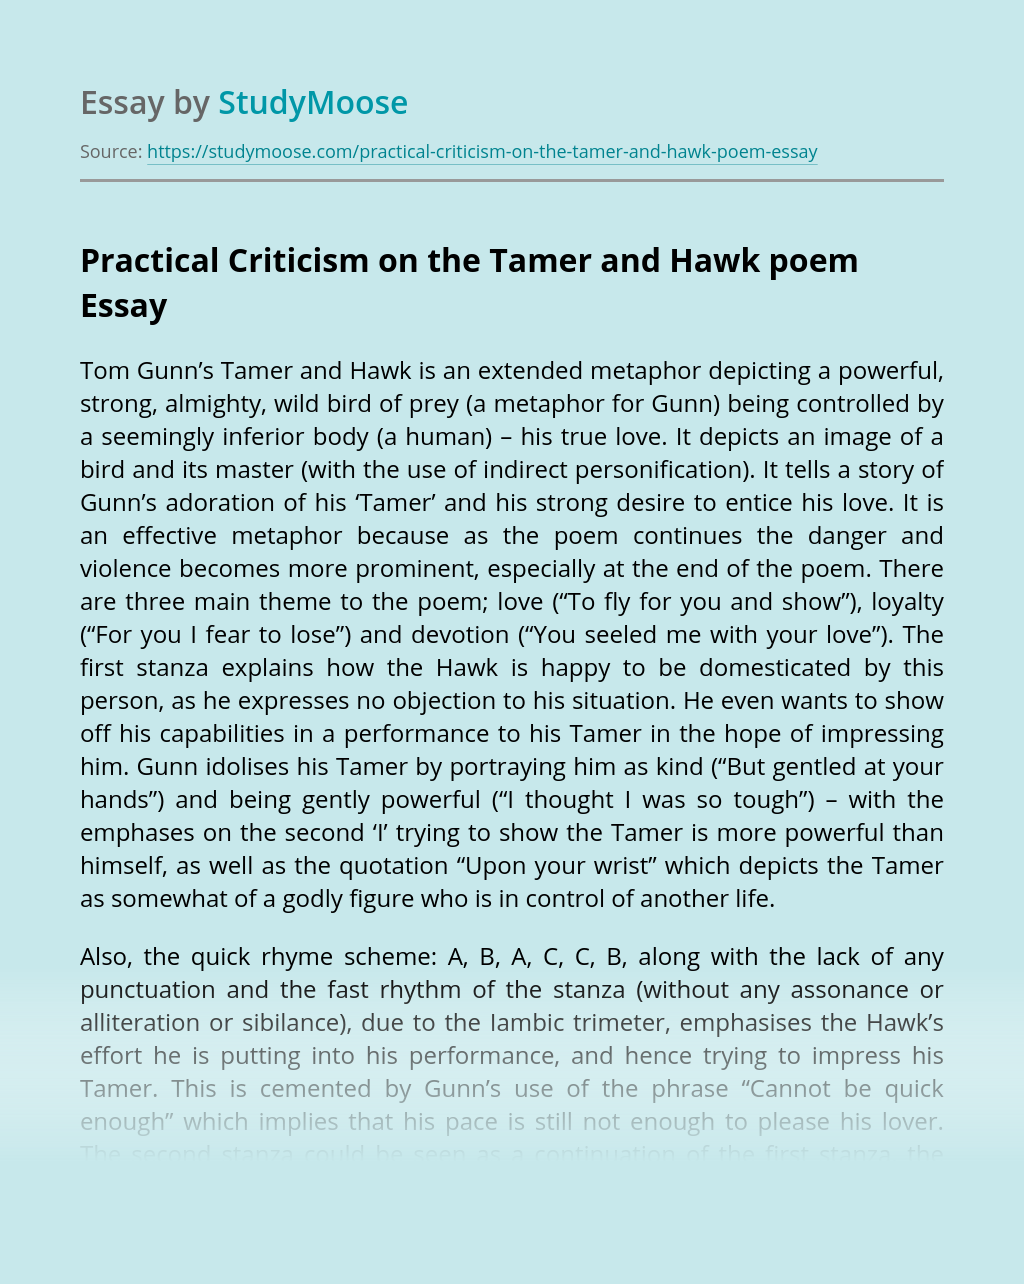 Practical Criticism on the Tamer and Hawk poem